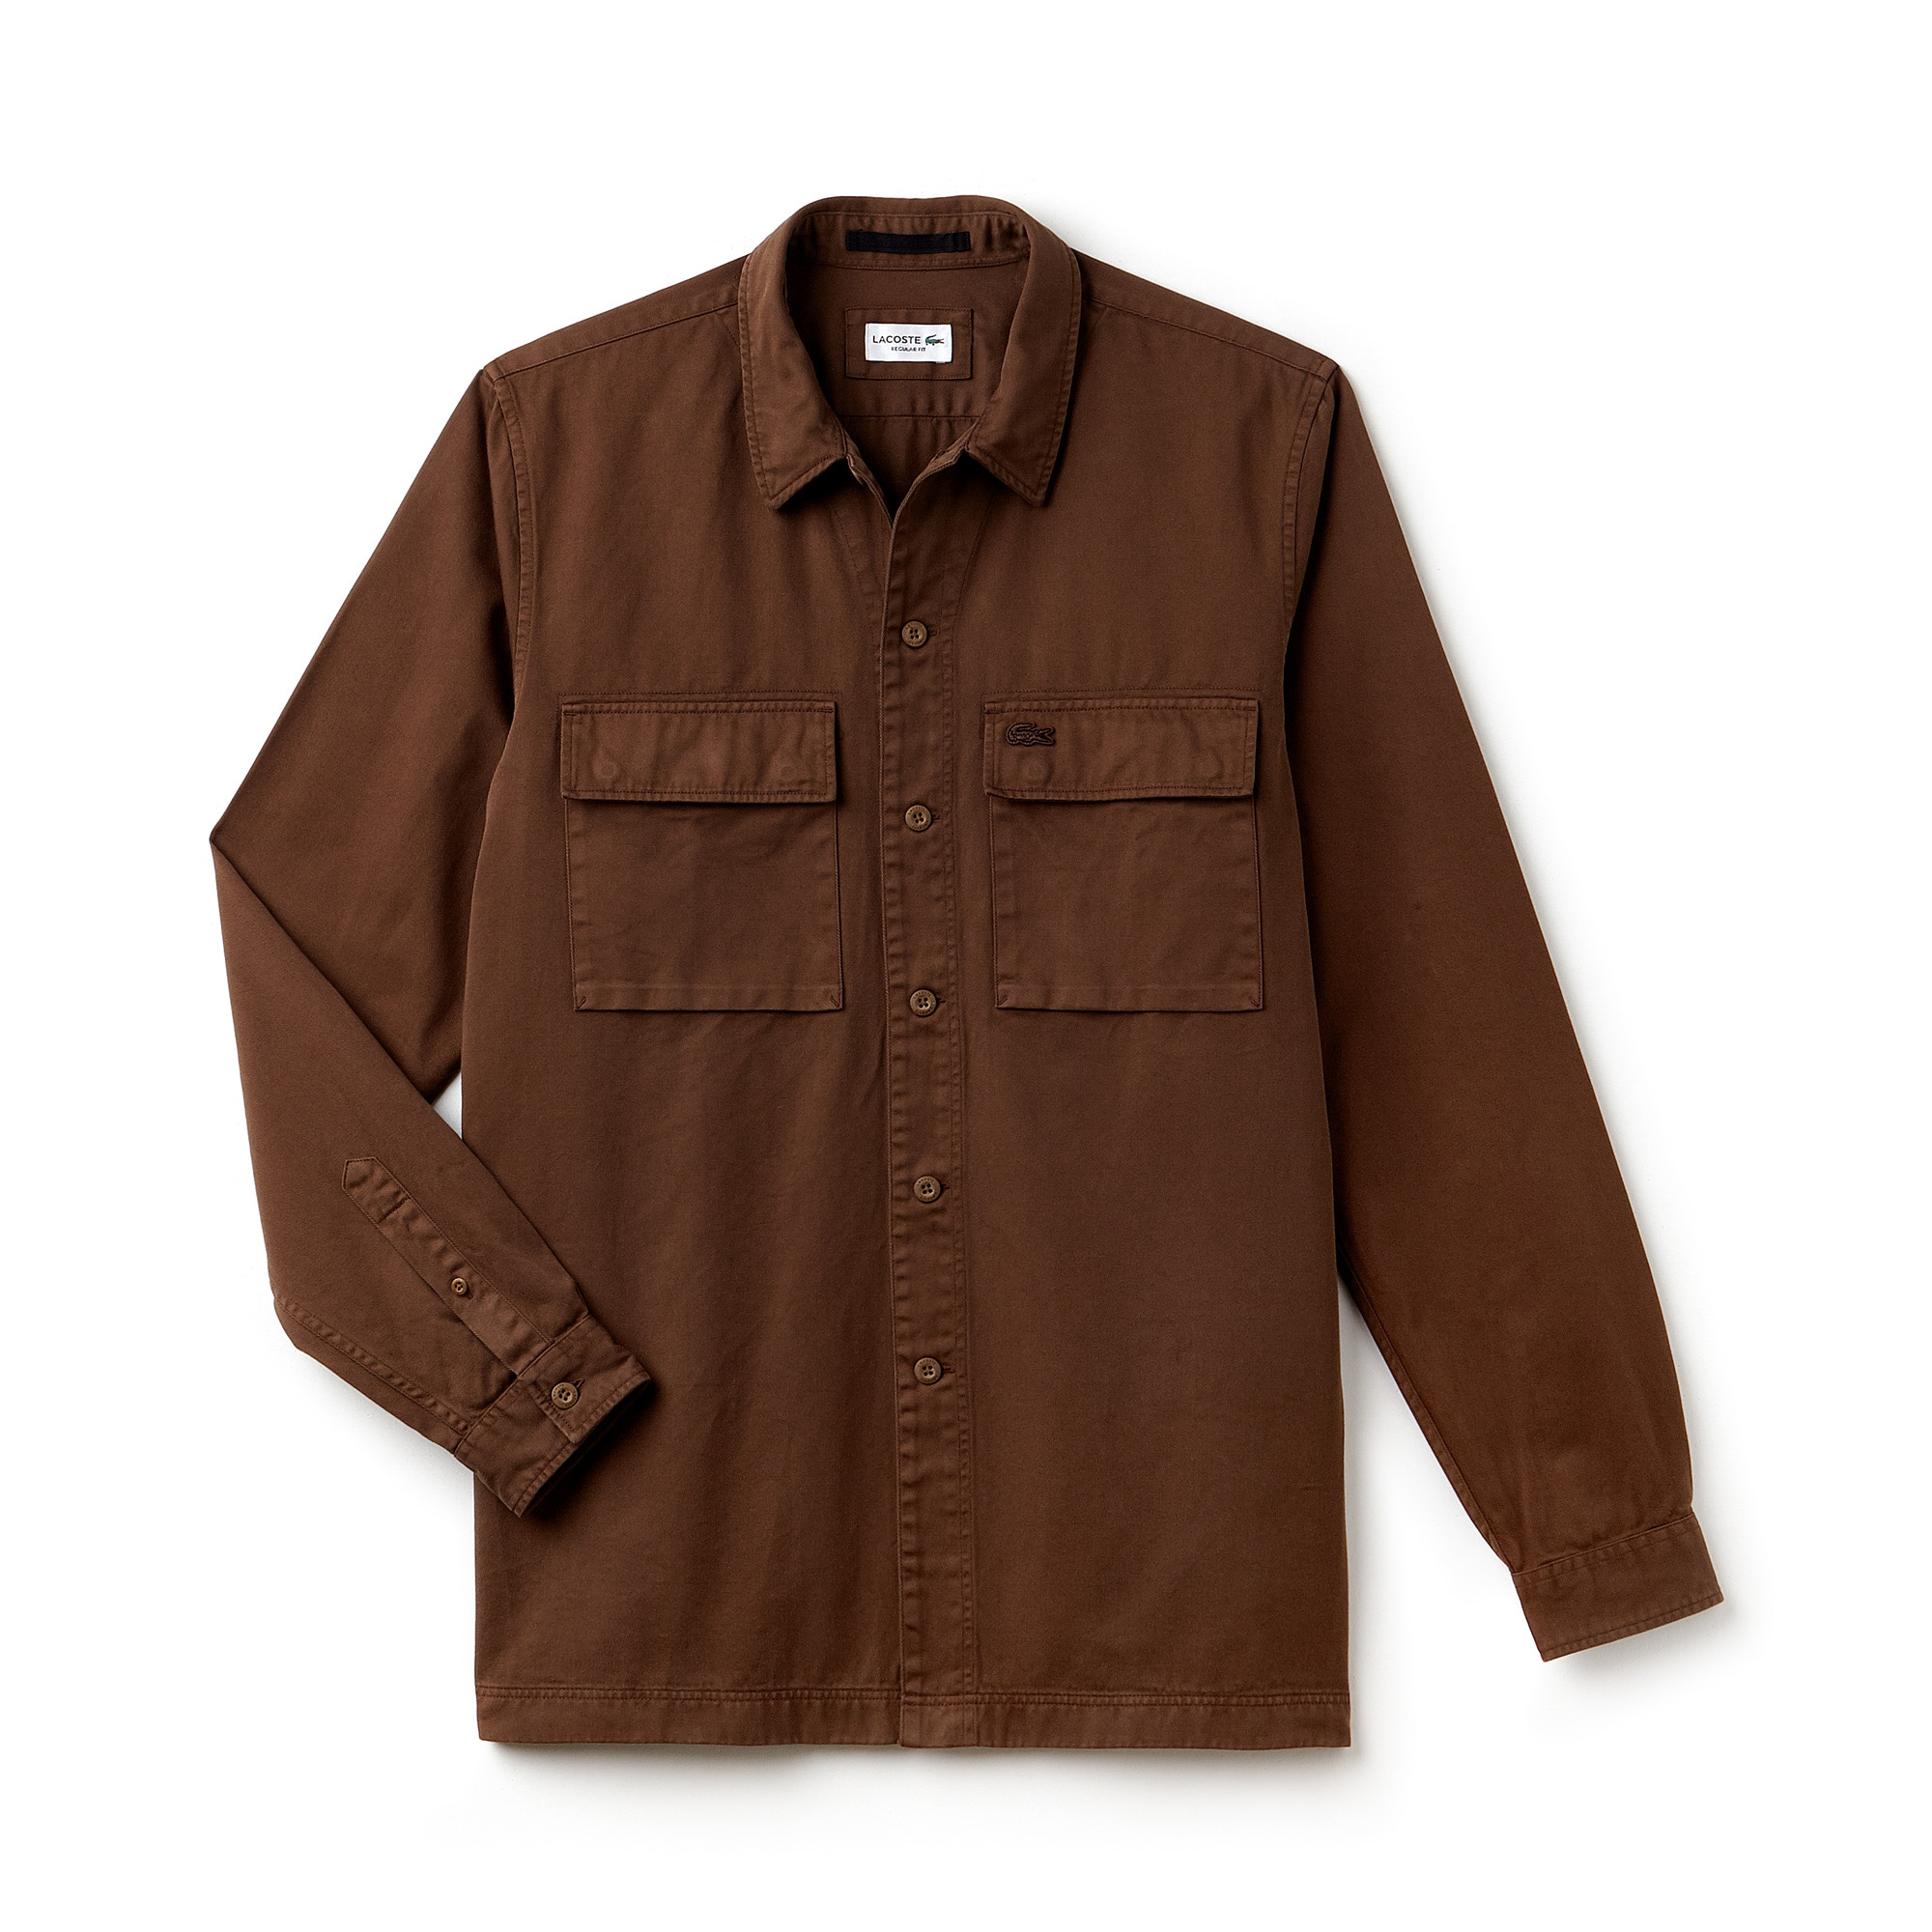 Men's Relaxed Fit Faded Twill Shirt